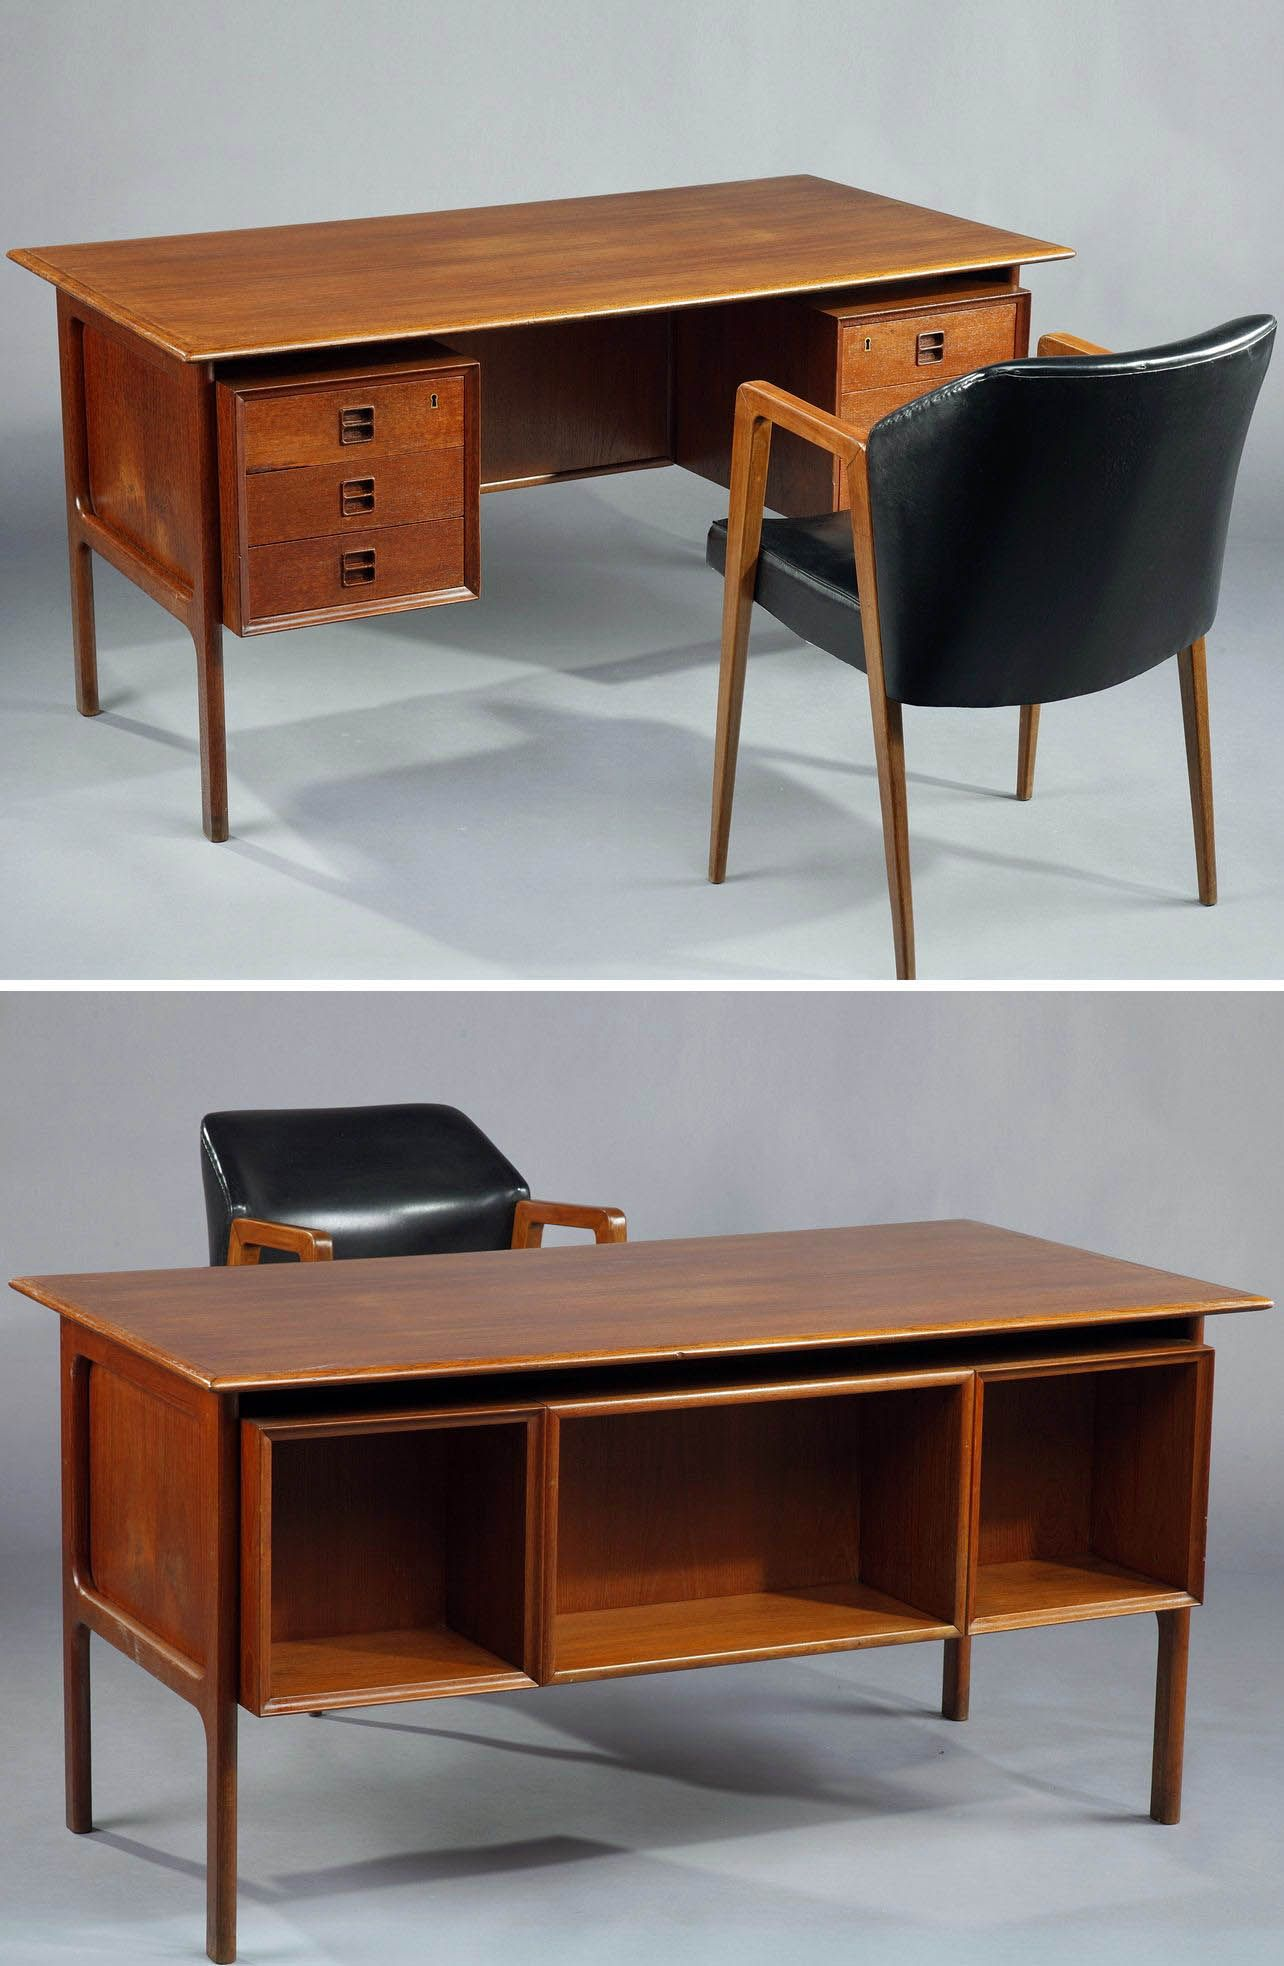 The Best And Easiest Leon Mid Century Desk To Inspire You Mid Century Desk Mid Century Modern Desk Mid Century Modern Furniture